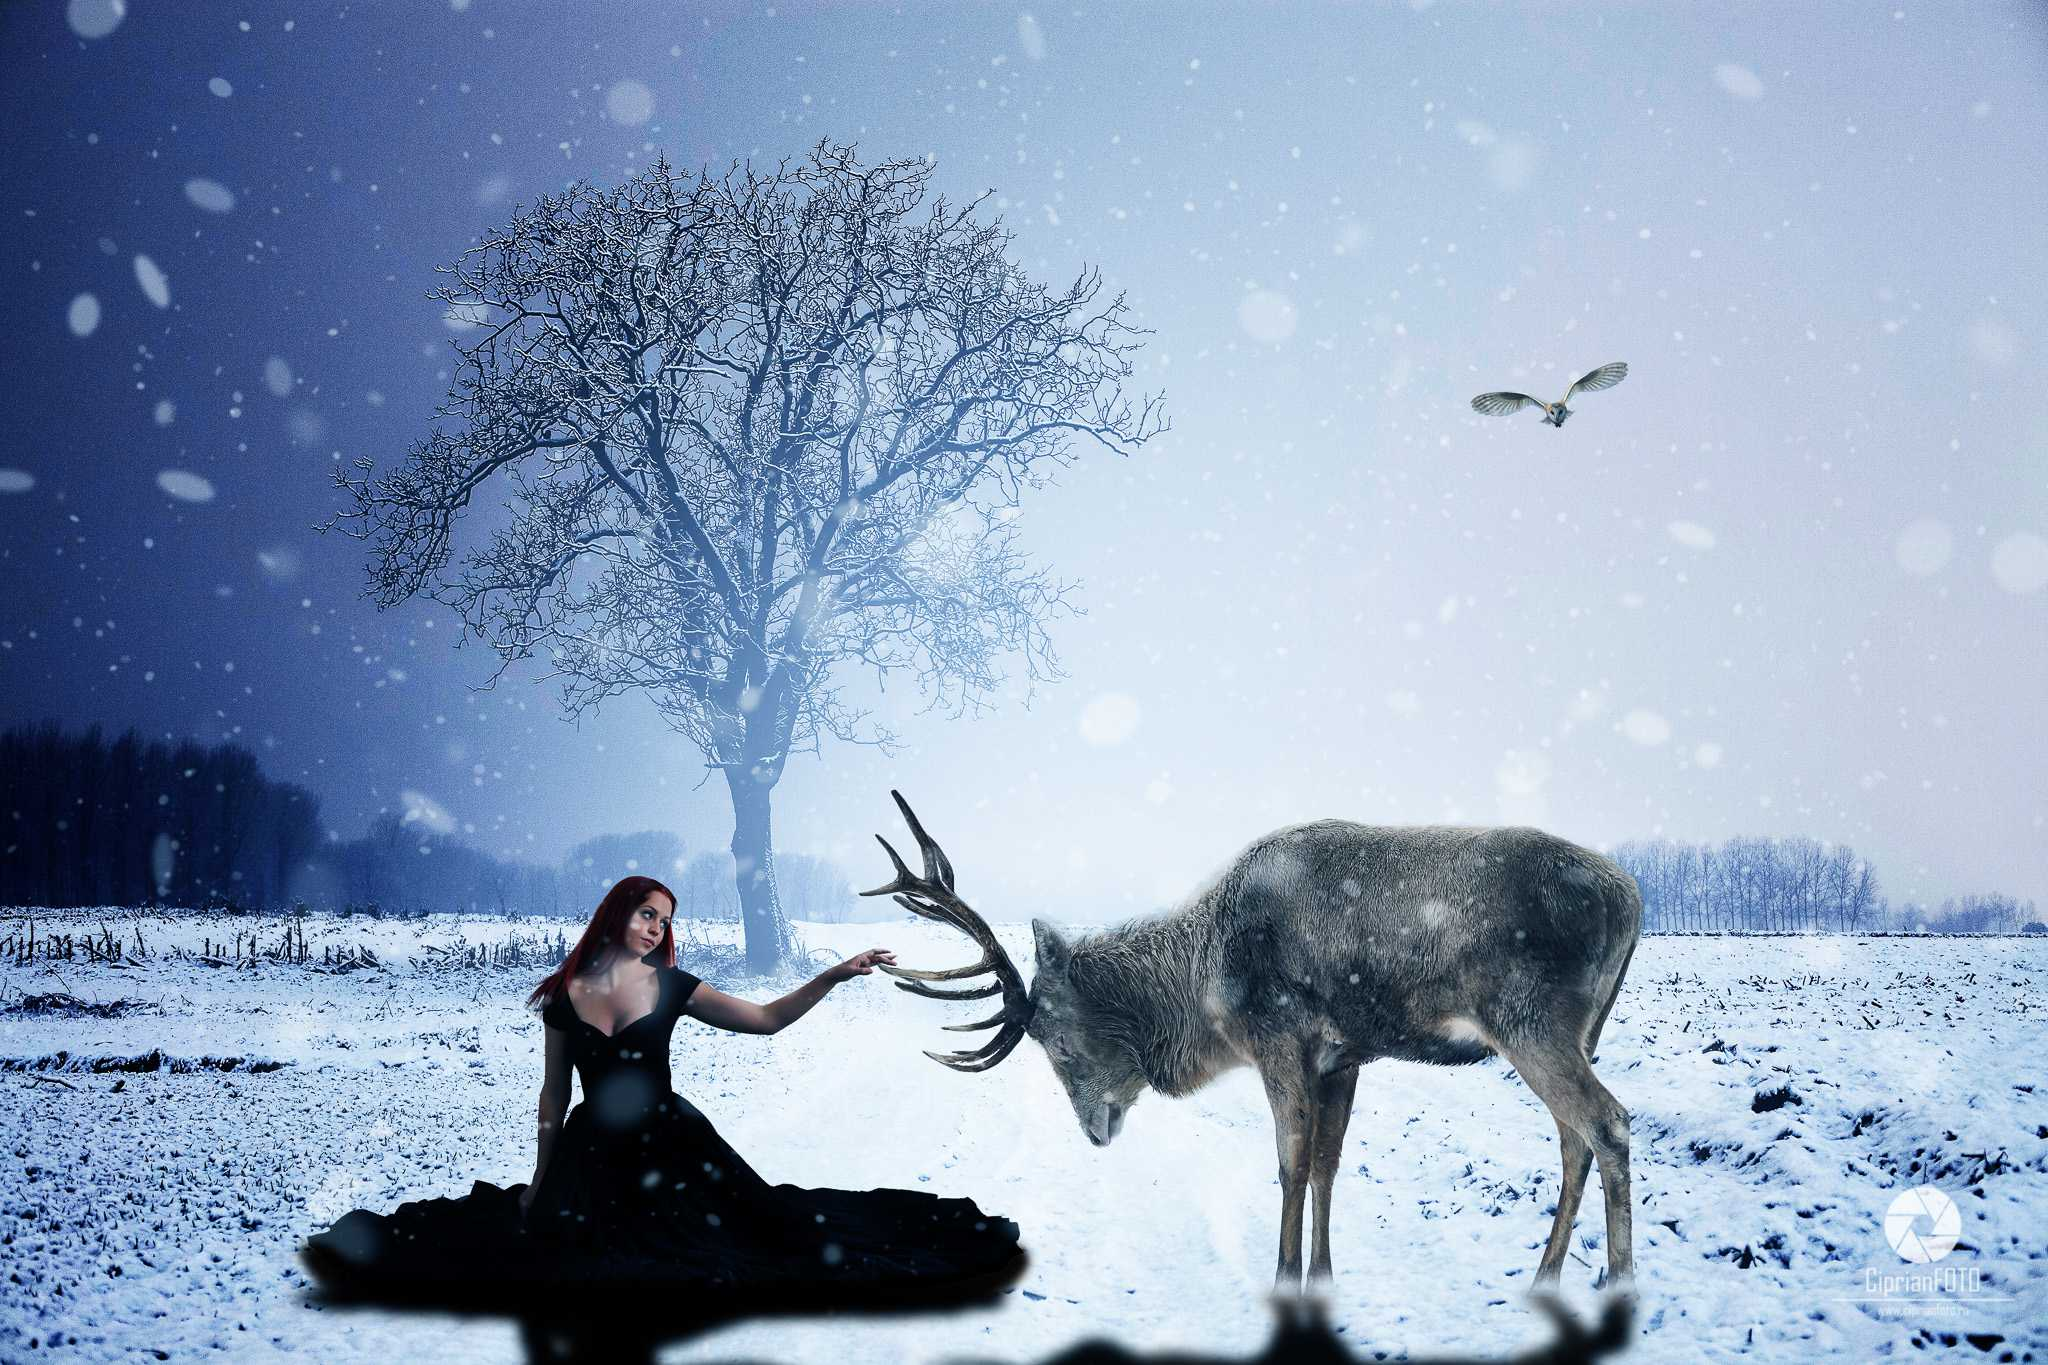 Girl_And_Deer_Photoshop_Manipulation_Tutorial_CiprianFOTO